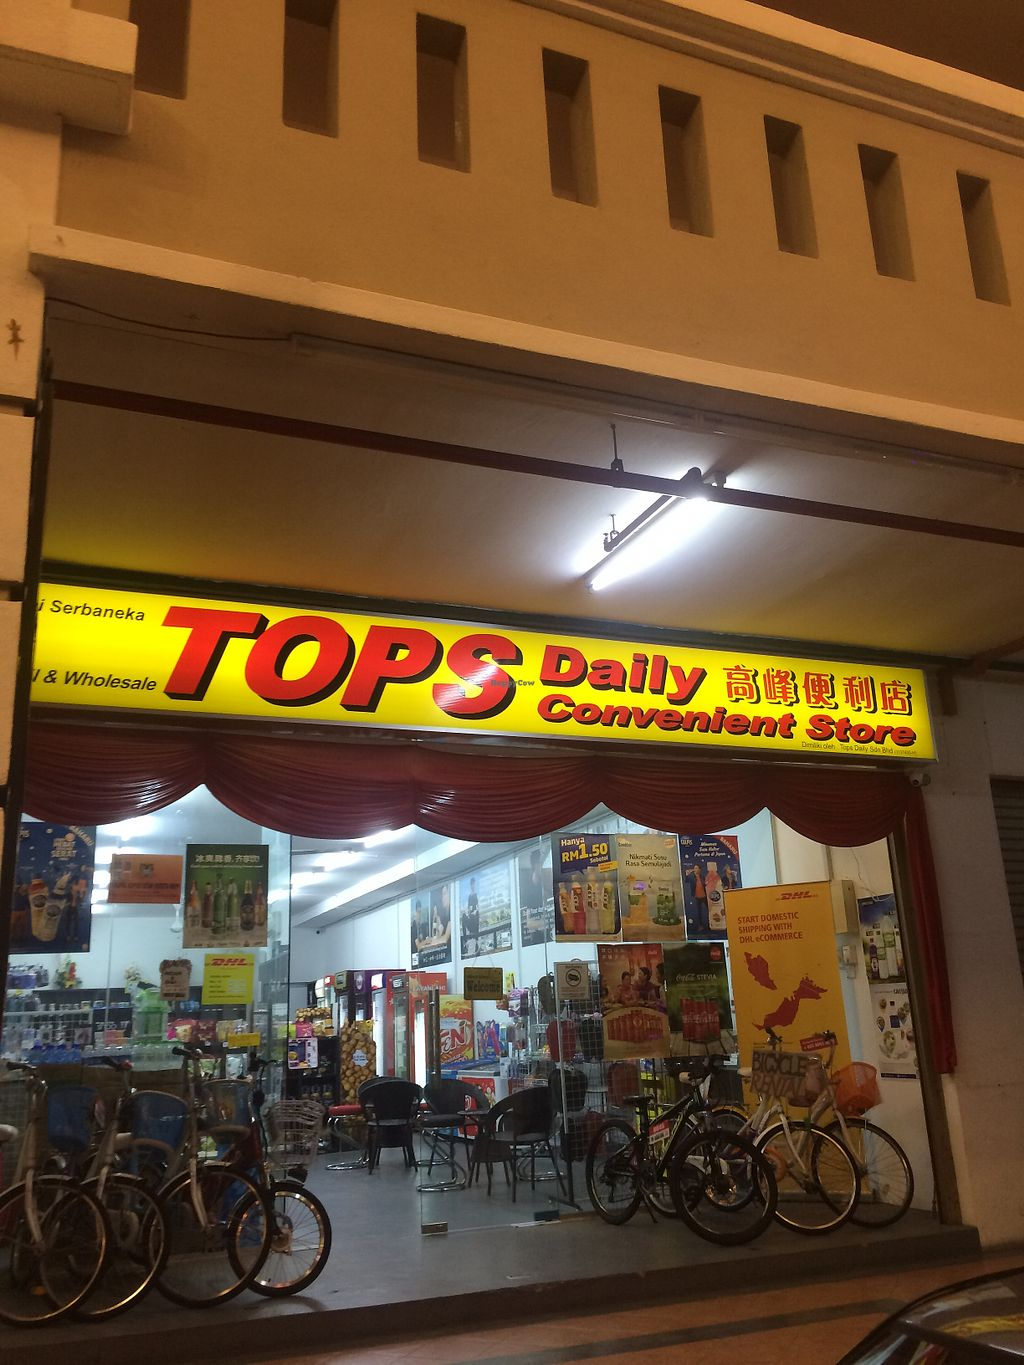 """Photo of The Vegetarian Food Specialist  by <a href=""""/members/profile/KatherineSER"""">KatherineSER</a> <br/>It's inside this convience store, it's not clearly marked  <br/> April 20, 2018  - <a href='/contact/abuse/image/20996/388685'>Report</a>"""